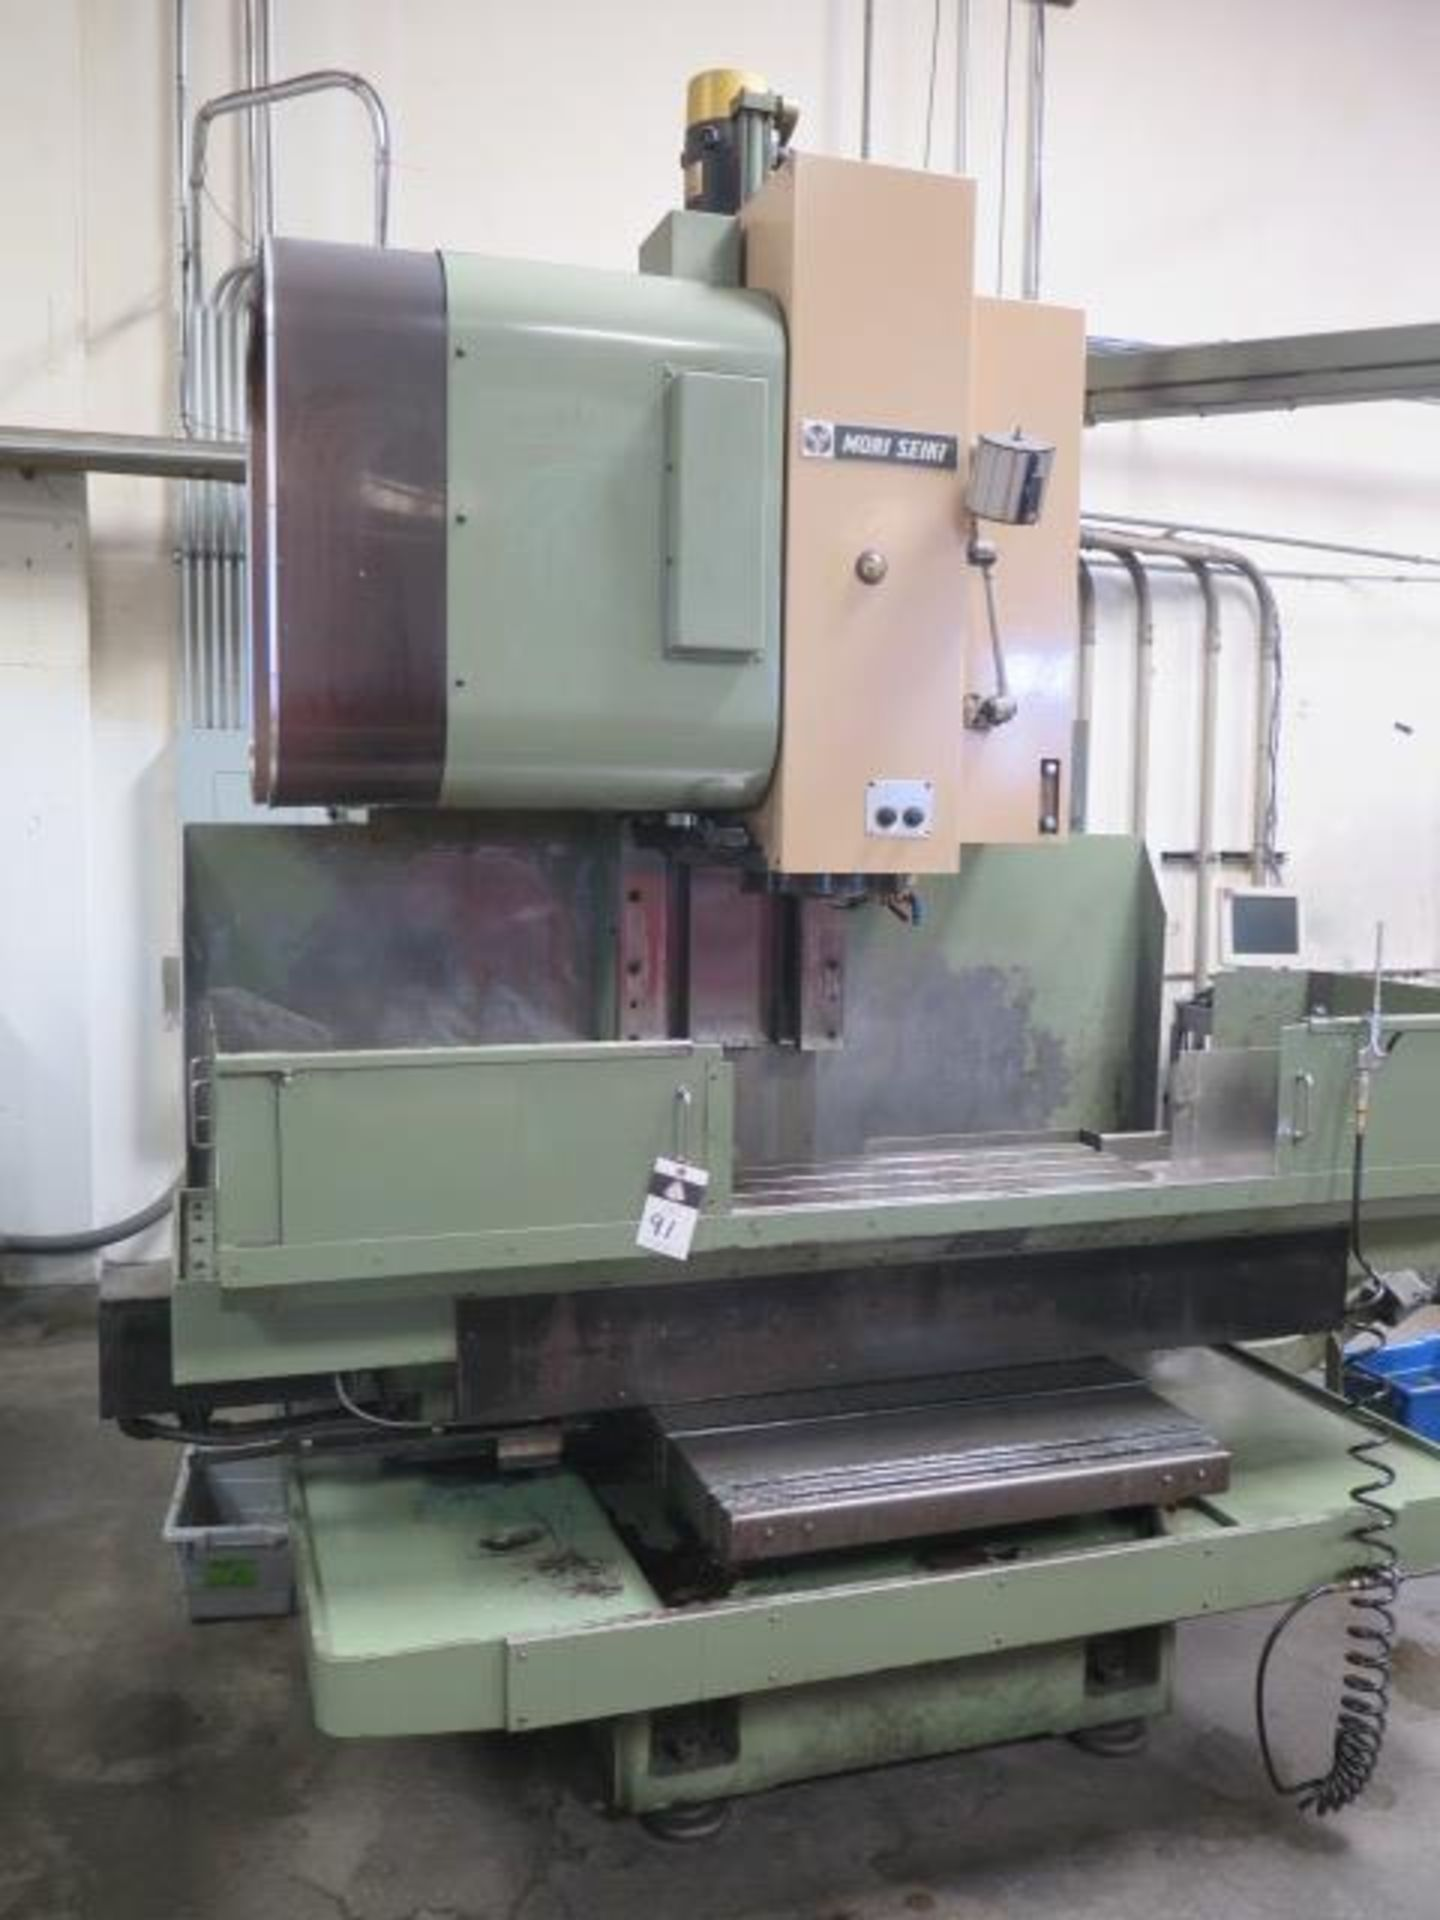 Mori Seiki MV-45/40 CNC VMC s/n 467 w/ Fanuc System 6M Controls, 20 ATC, SOLD AS IS - Image 2 of 14